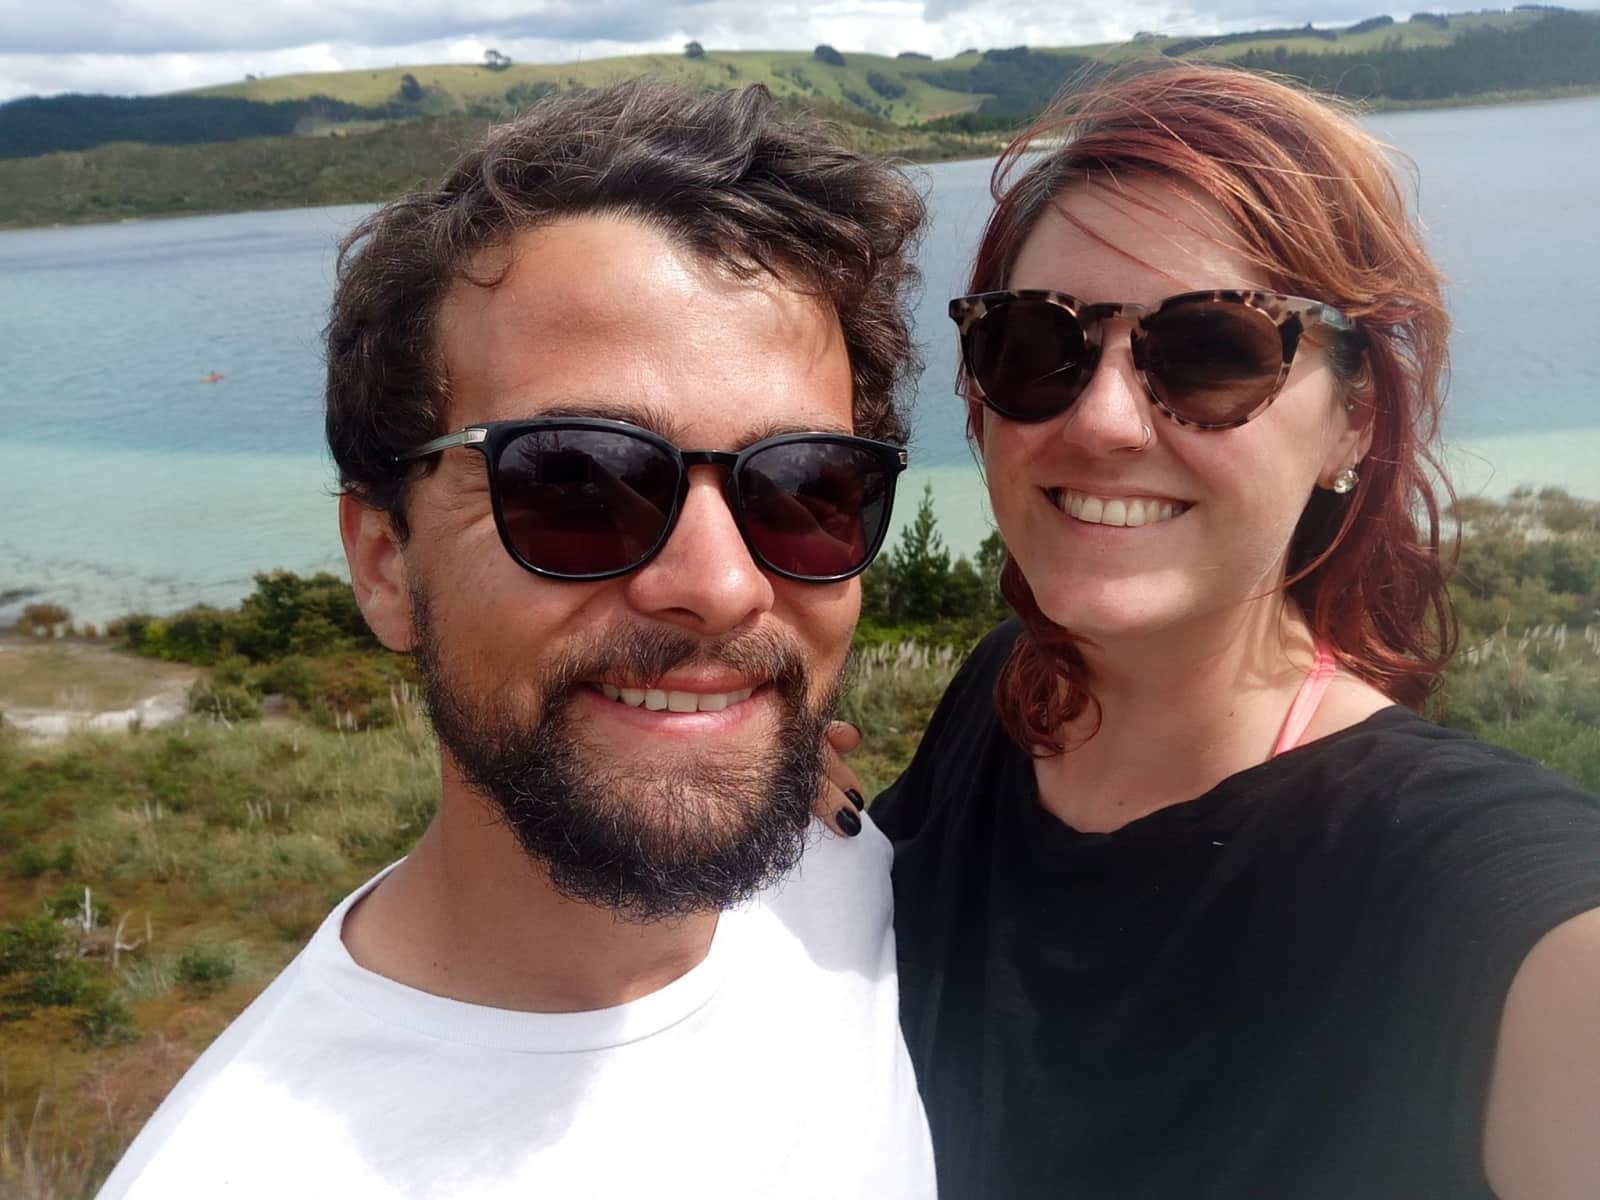 Mary & Damien from Dargaville, New Zealand